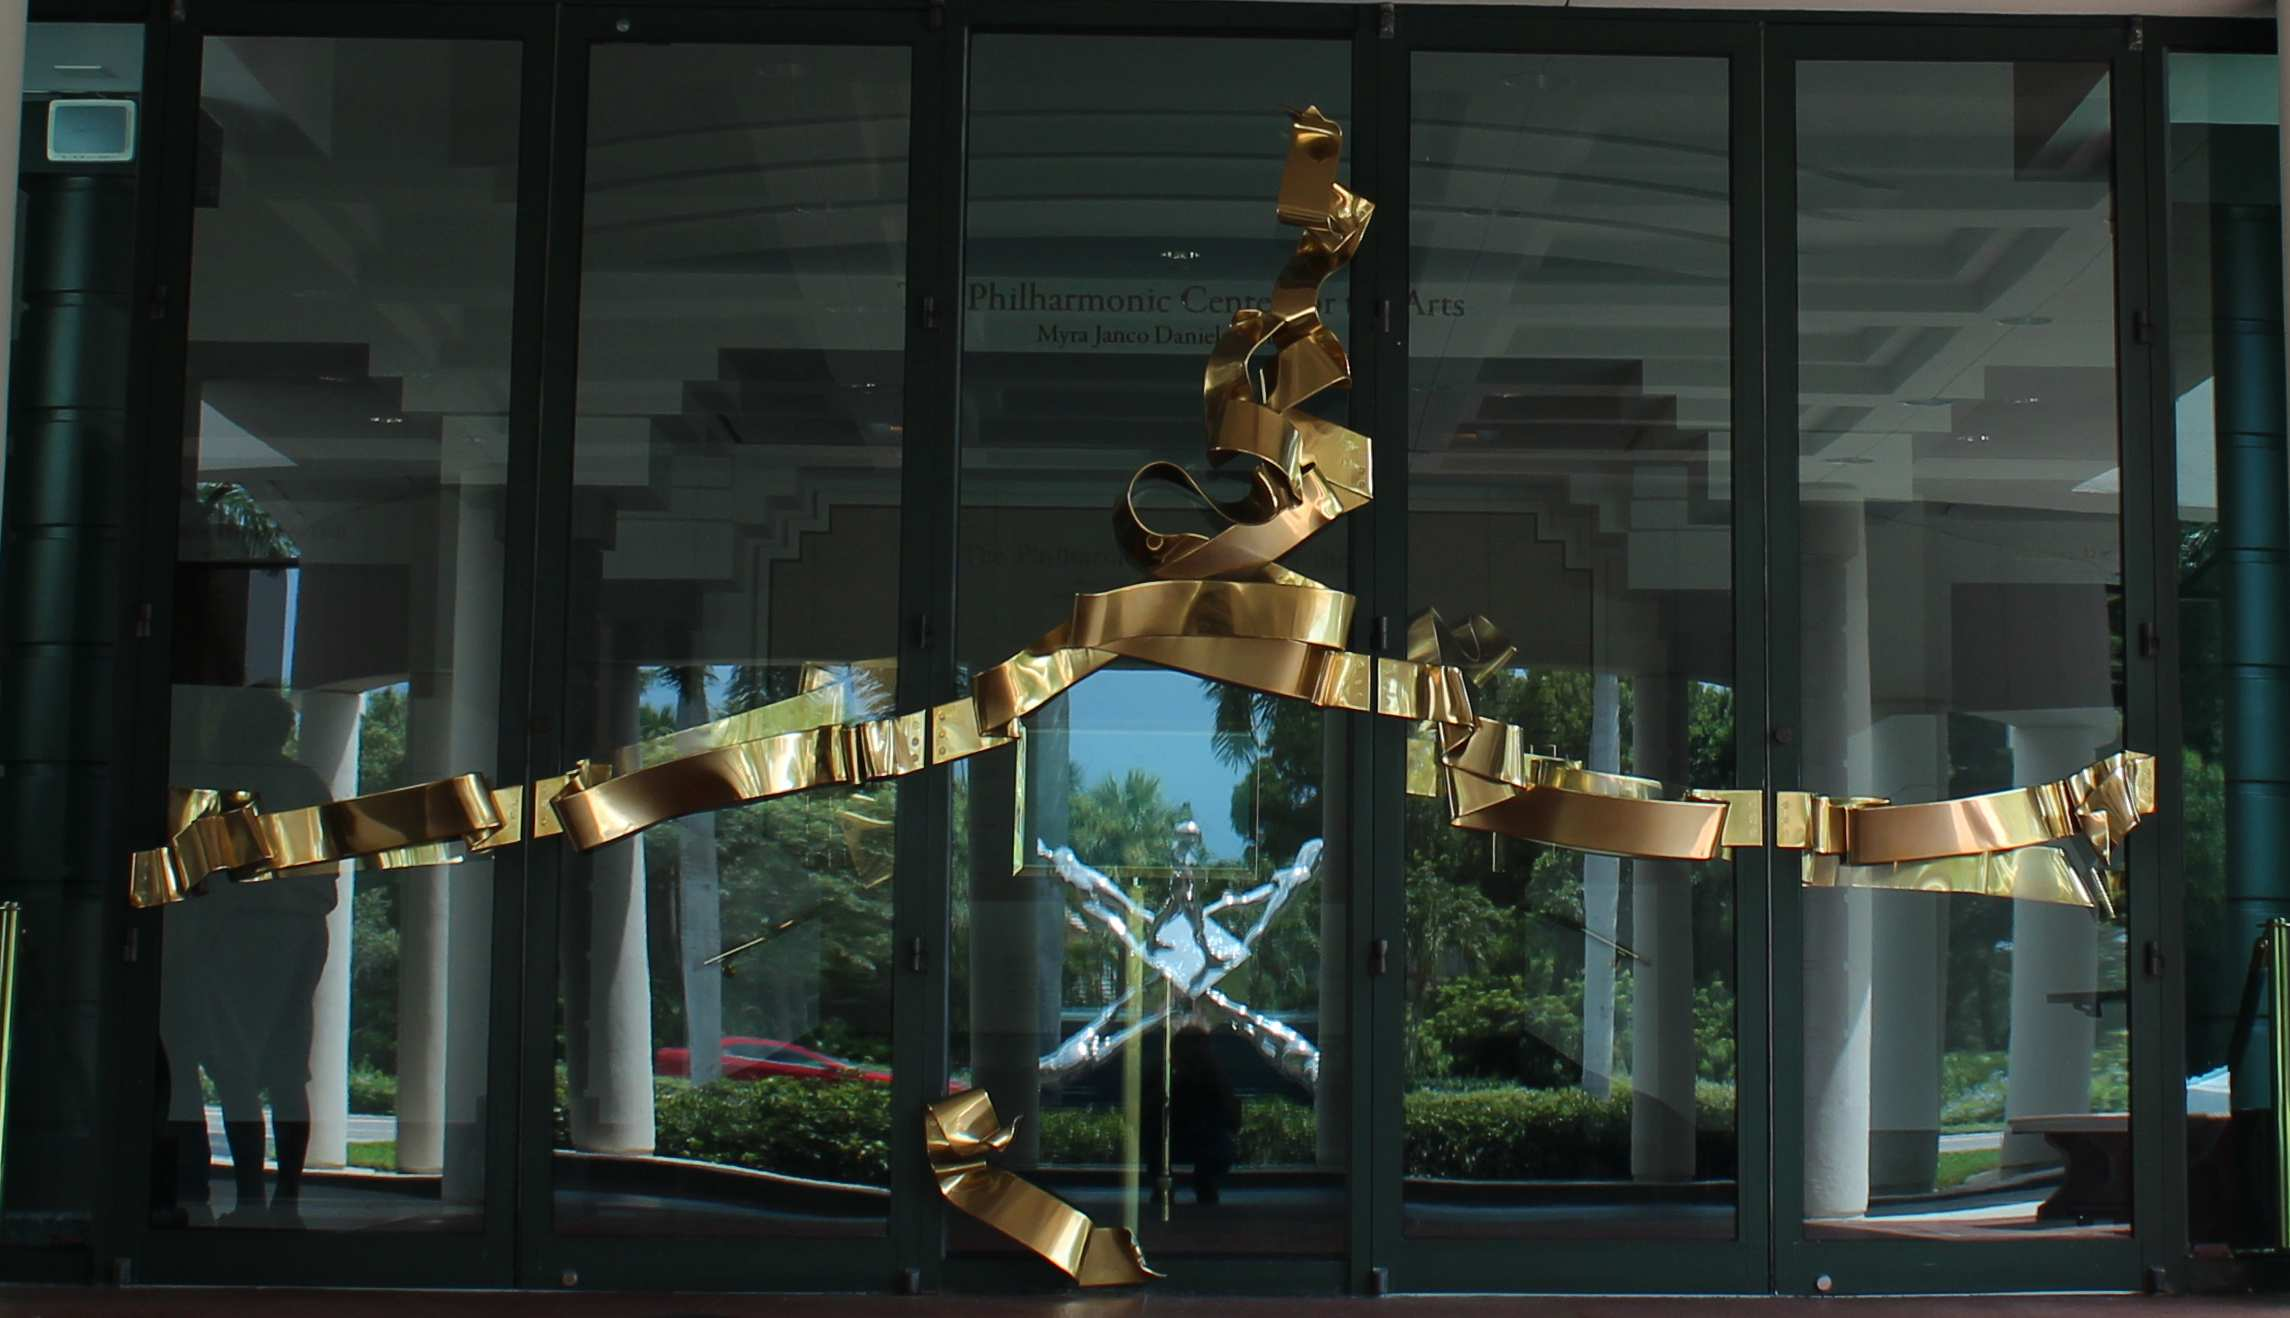 cross currents by albert paley Albert paley, an active artist for over 40 years at his studio in rochester, new  york, is the first metal sculptor to receive the  cross currents, exterior sculpture.